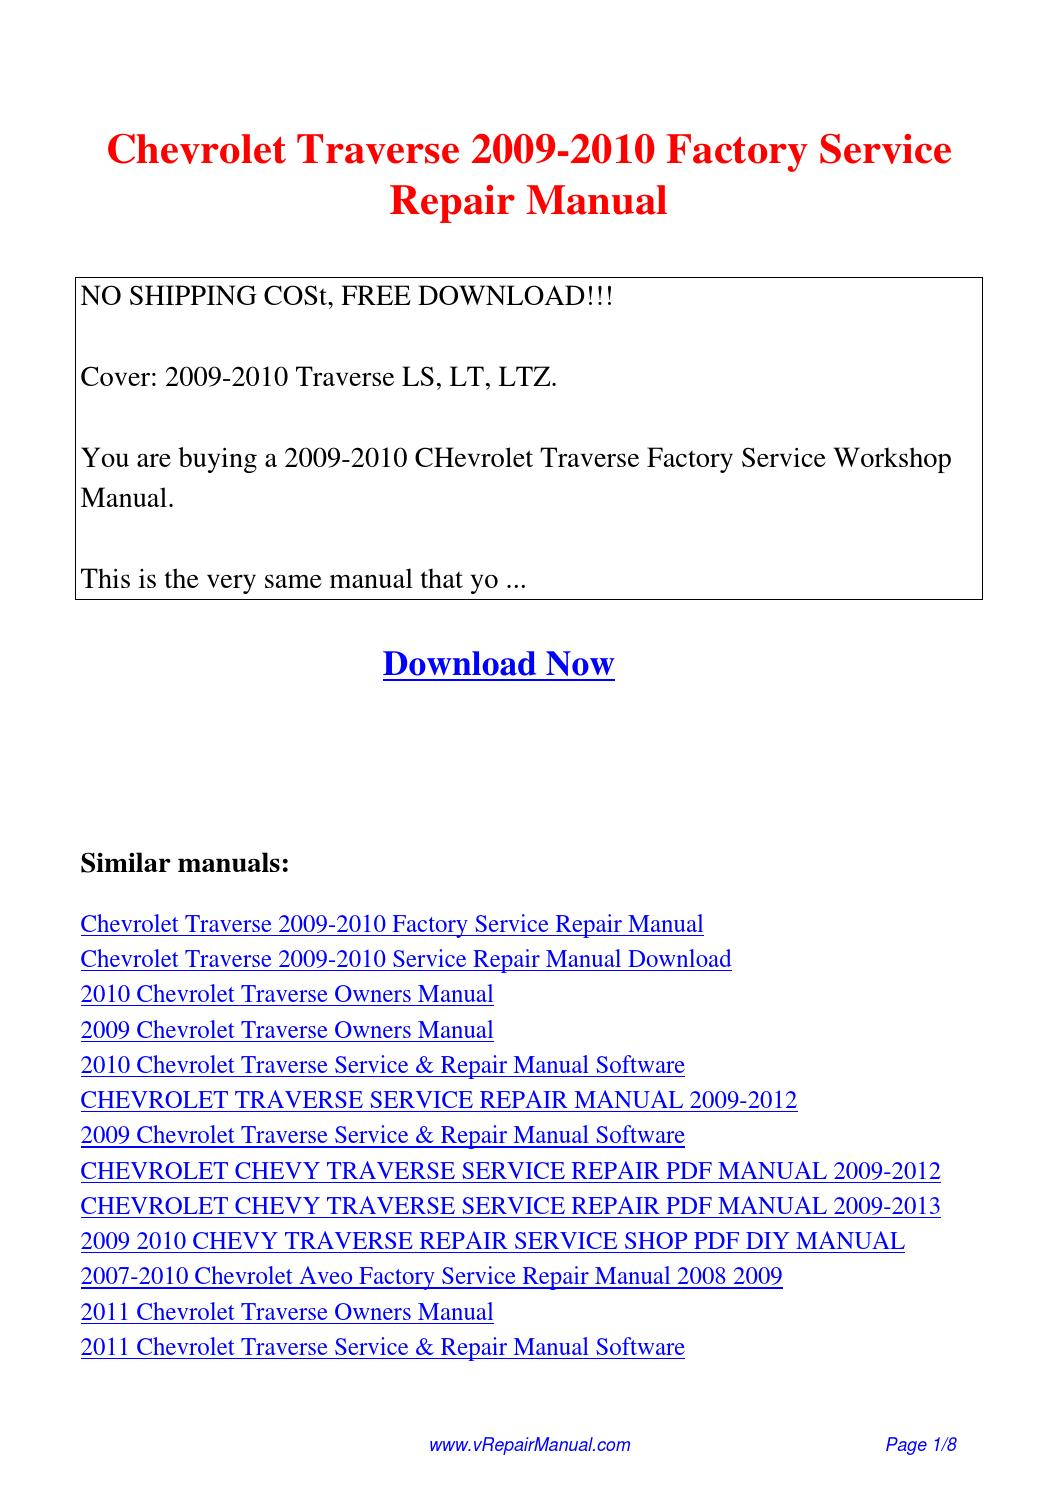 Chevrolet Traverse 2009-2010 Factory Service Repair Manual.pdf by David  Zhang - issuu